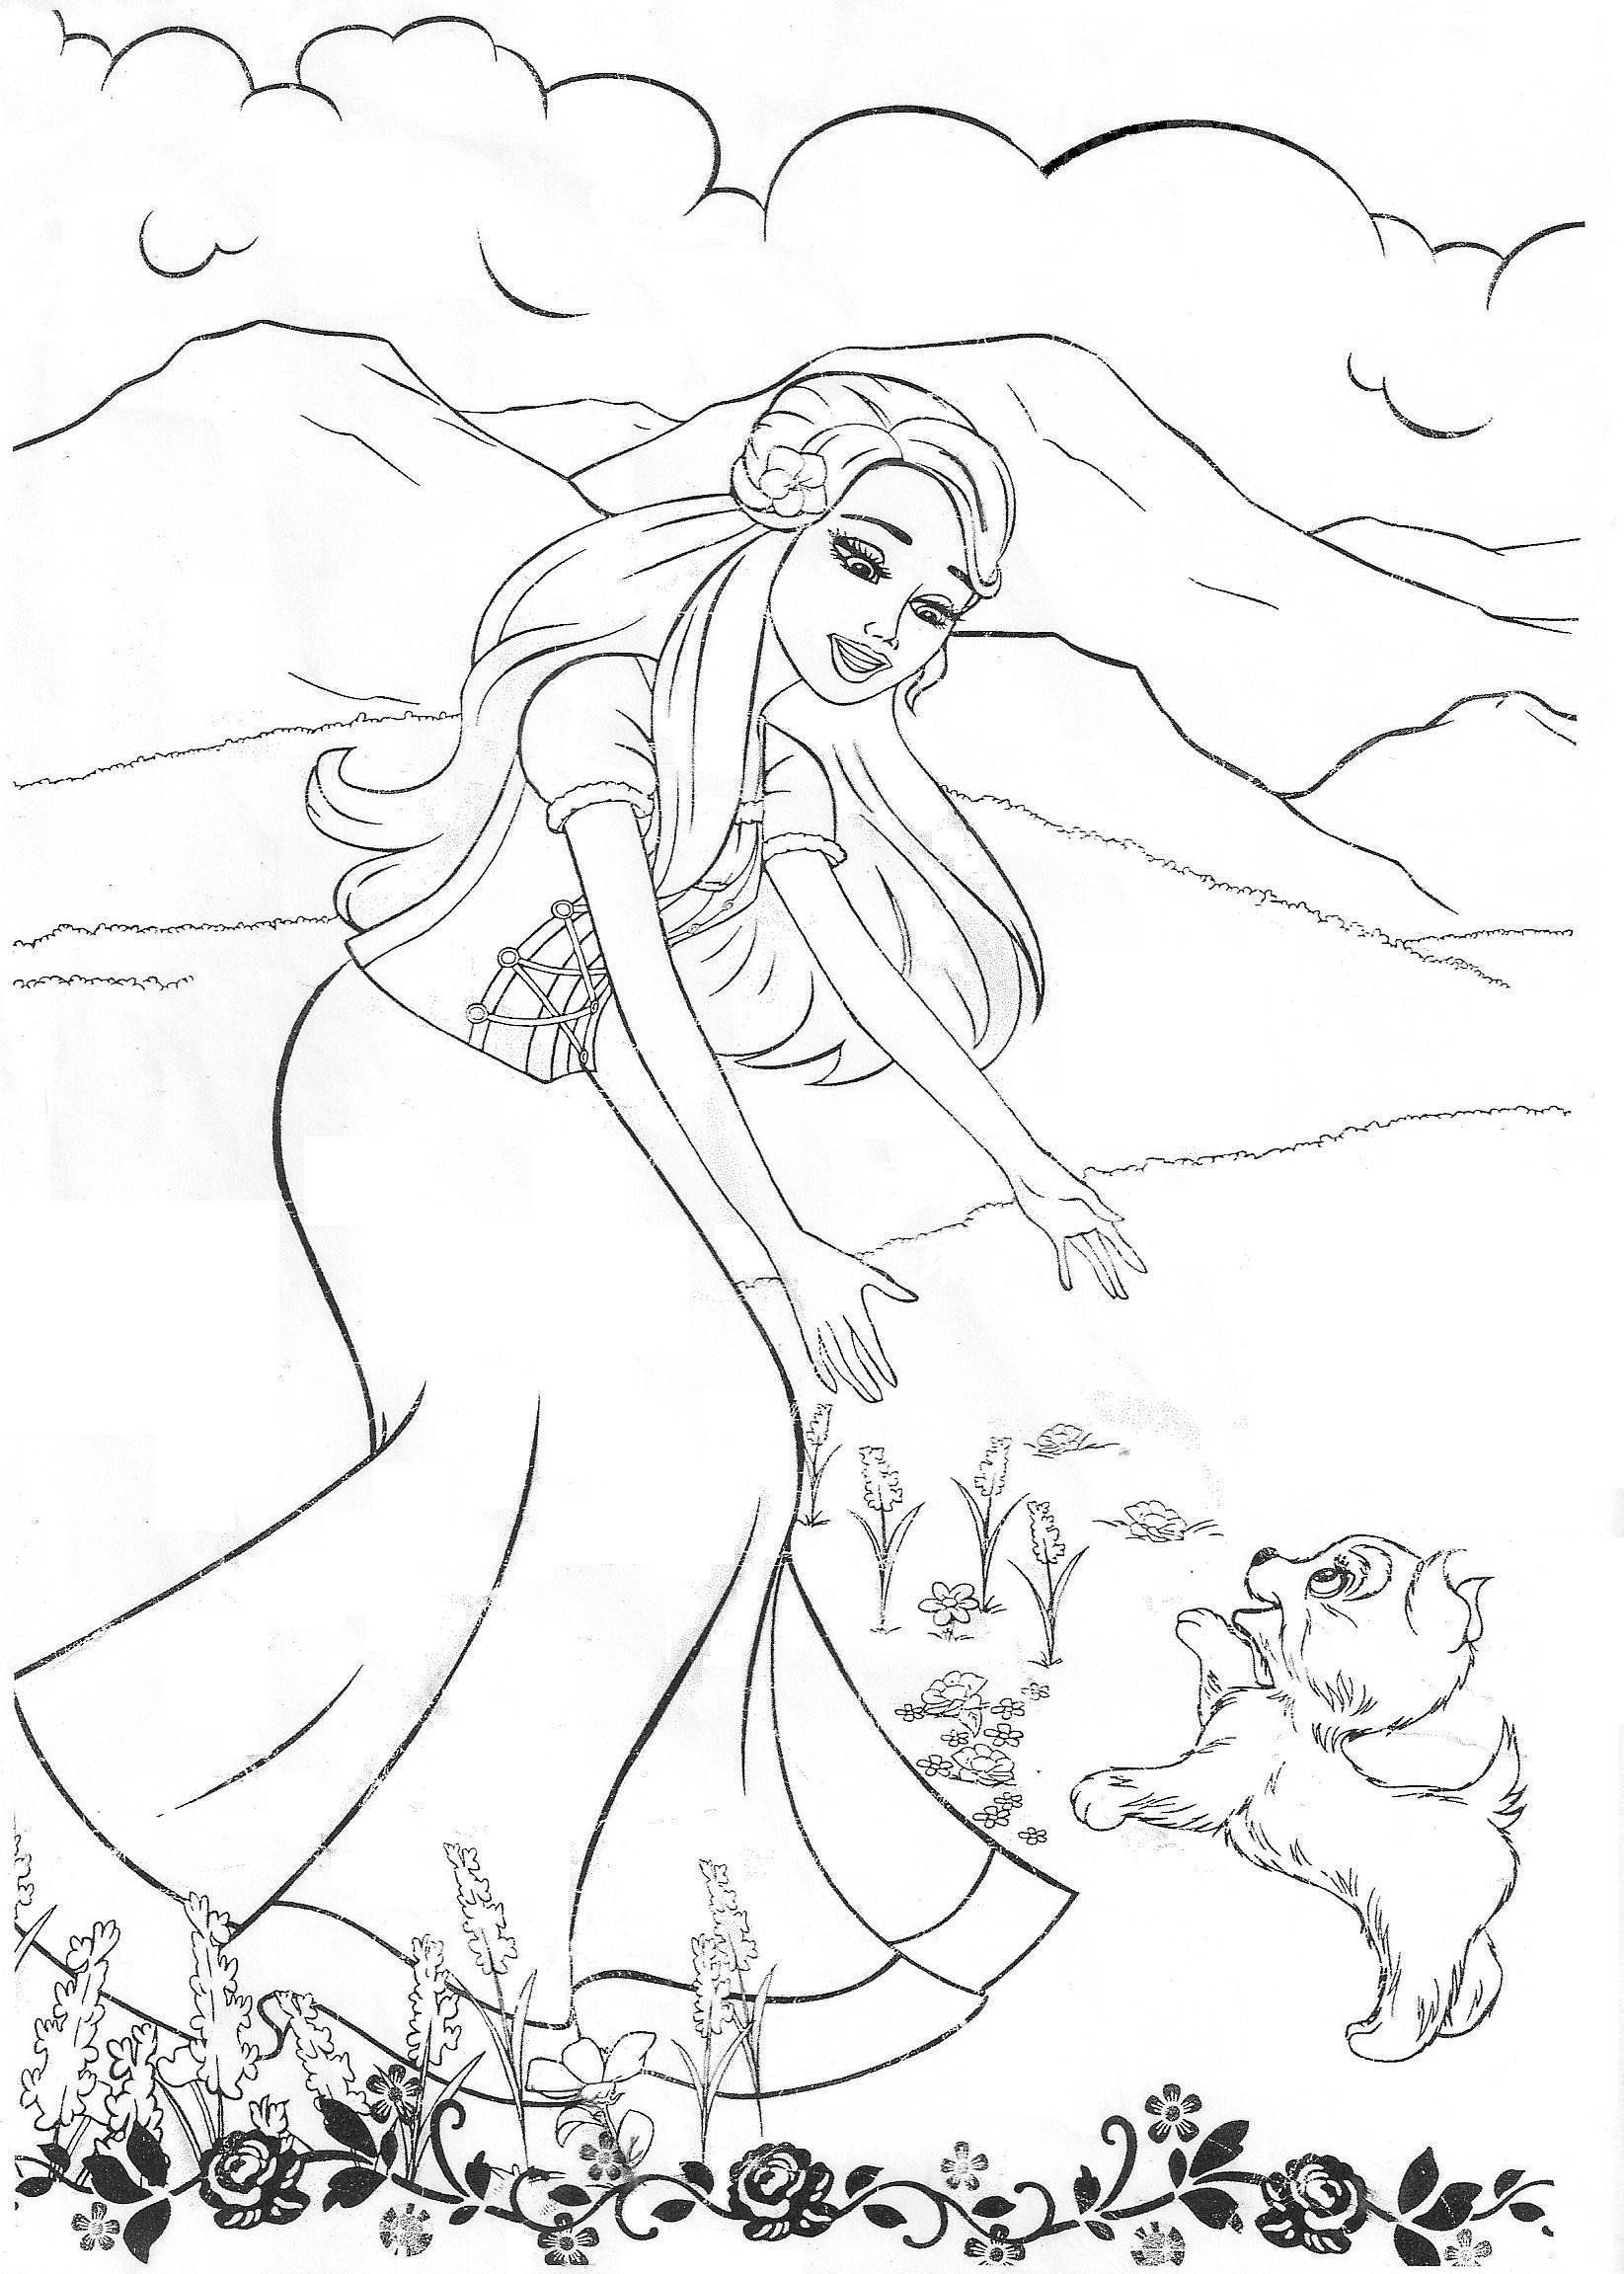 Barbie Chelsea Coloring Pages Barbie And The Dreamhouse Coloring Pages Get Coloring Pages Mermaid Coloring Pages Barbie Coloring Pages Cartoon Coloring Pages